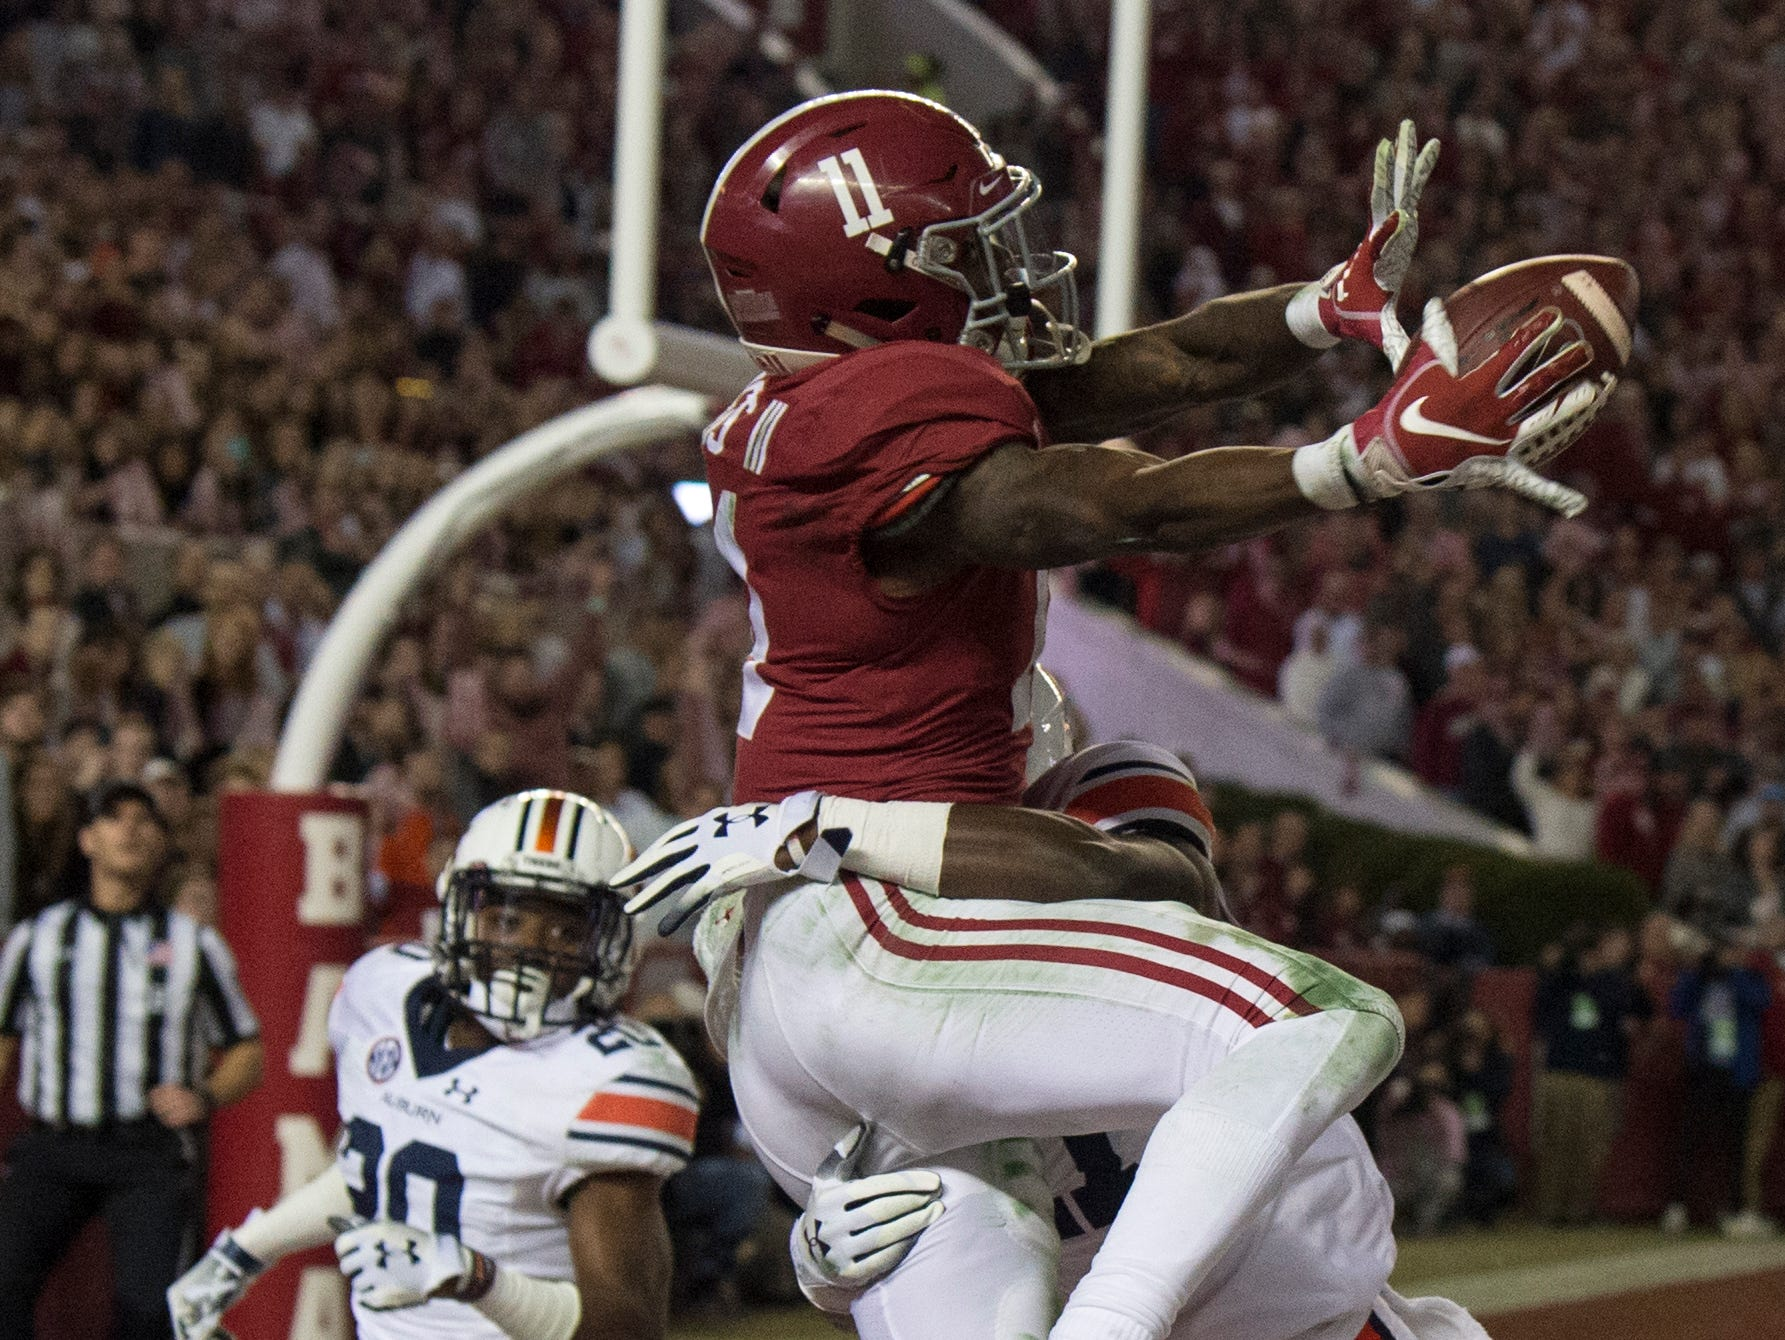 Alabama wide receiver Henry Ruggs, III, (11) catches a touchdown pass in the end zone during the Iron Bowl at Bryant-Denny Stadium in Tuscaloosa, Ala., on Saturday, Nov. 24, 2018. Alabama defeated Auburn 52-21.